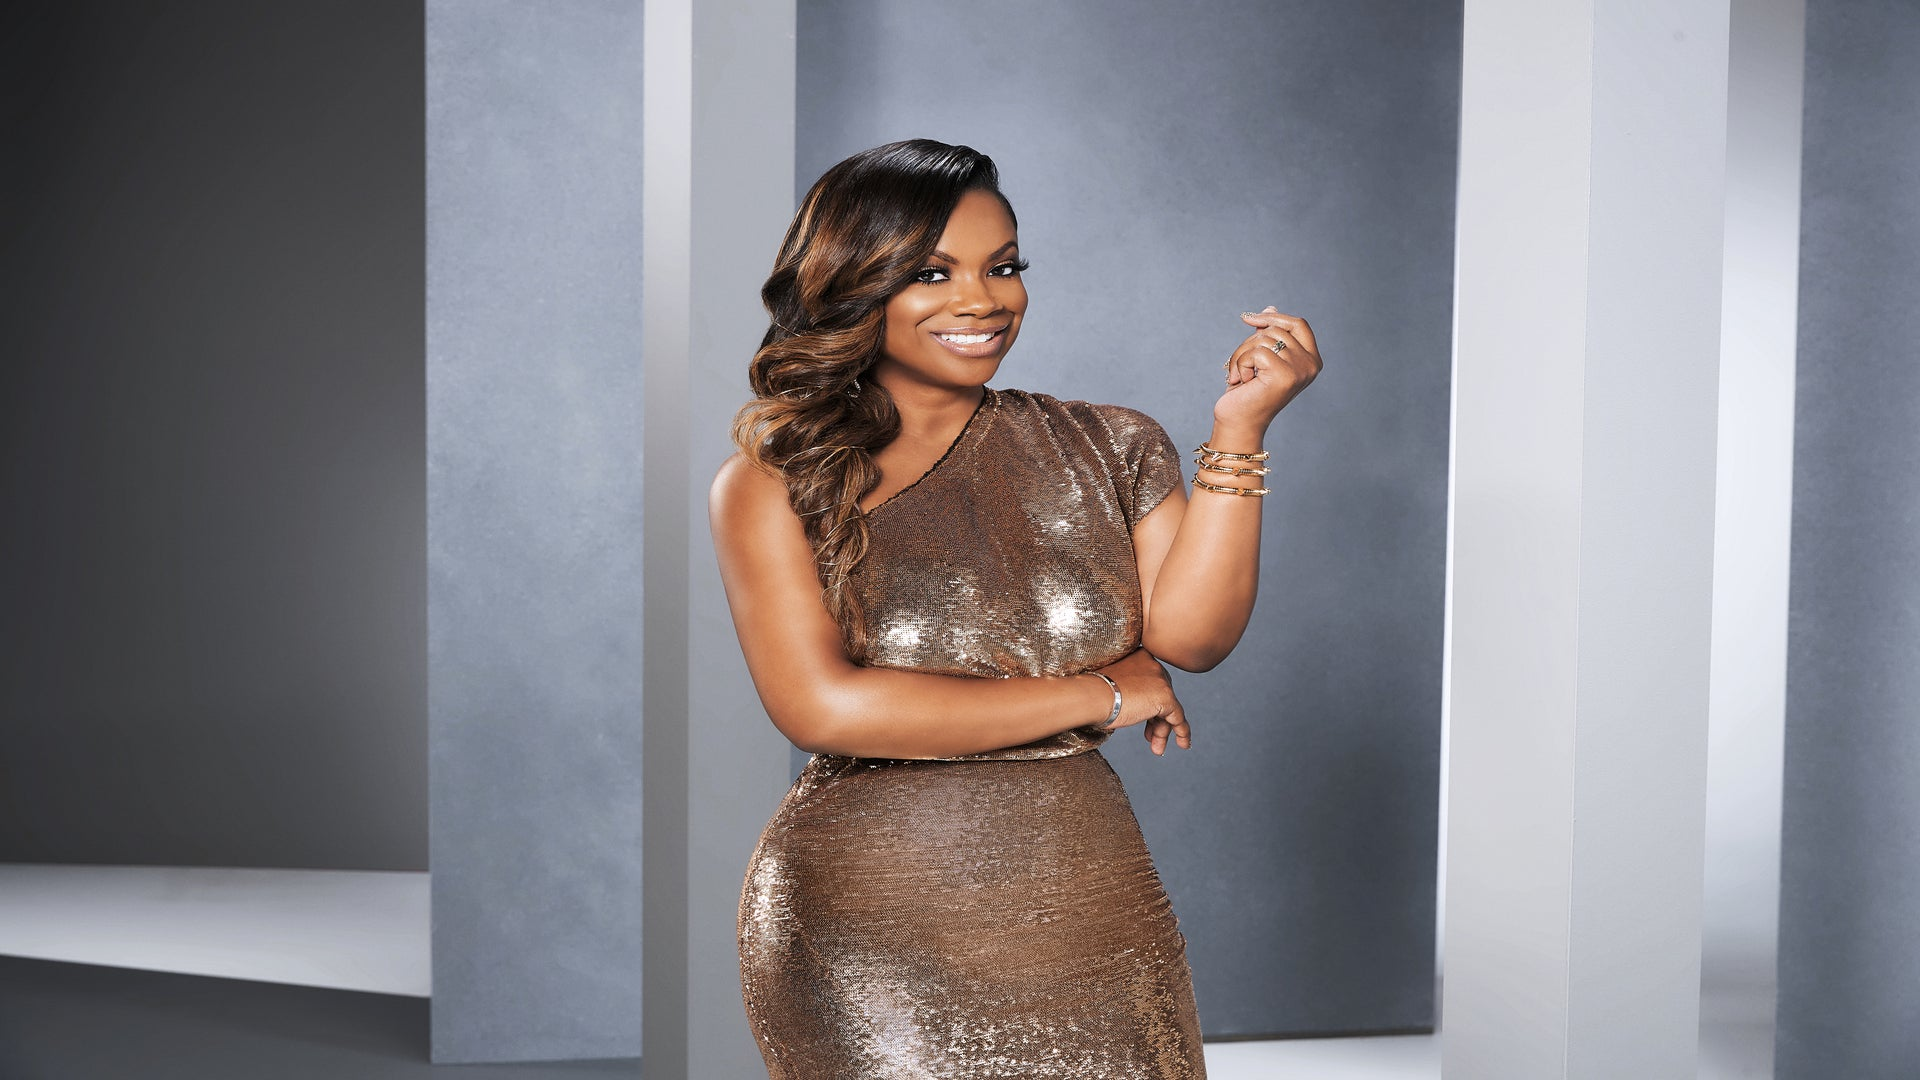 Kandi Burruss Is Taking Her 'Welcome To The Dungeon' Show On The Road